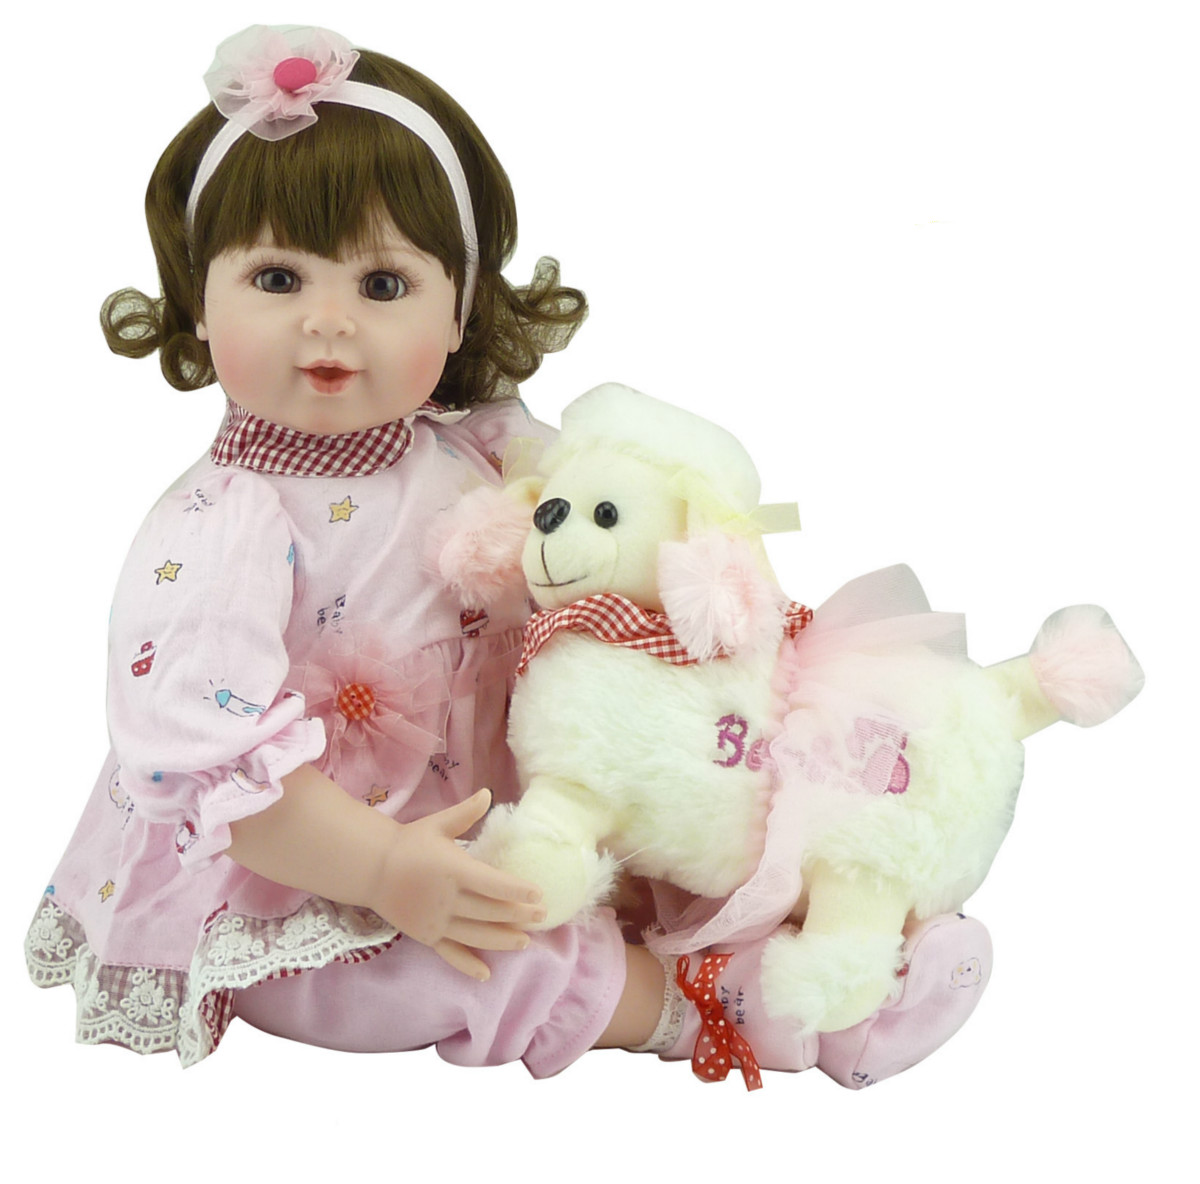 20 Inch Vinyl Dolls Soft Silicone Reborn Baby Doll Girl Kid Toys Birthday Gift Play House Toy for Christmas Presents hot sale silicone reborn babies dolls gift for child kid classic play house toy girl brinquedos baby reborn doll toys